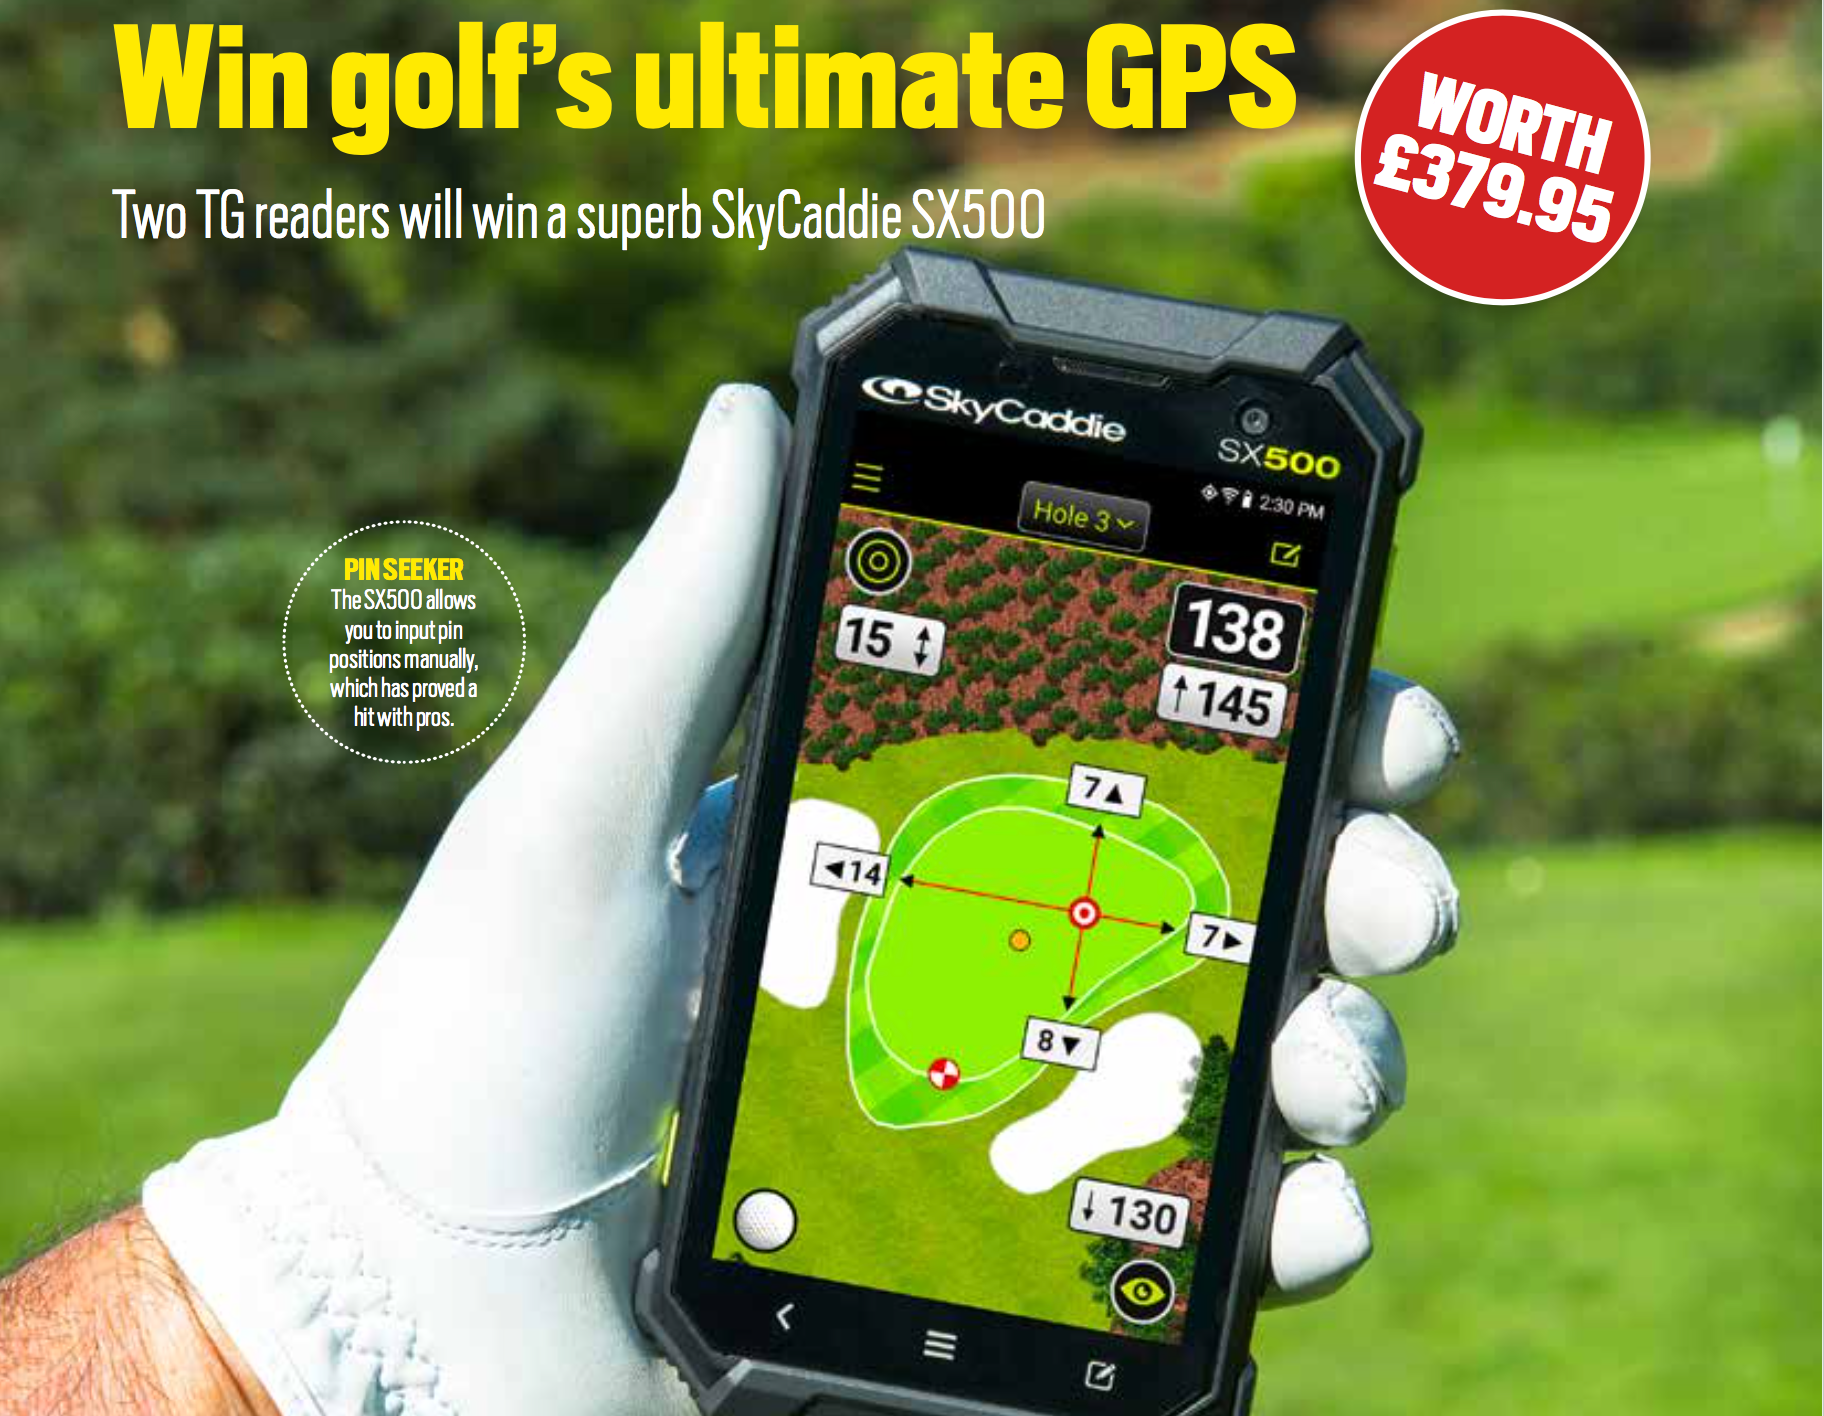 WIN golf's ultimate GPS  sweepstakes